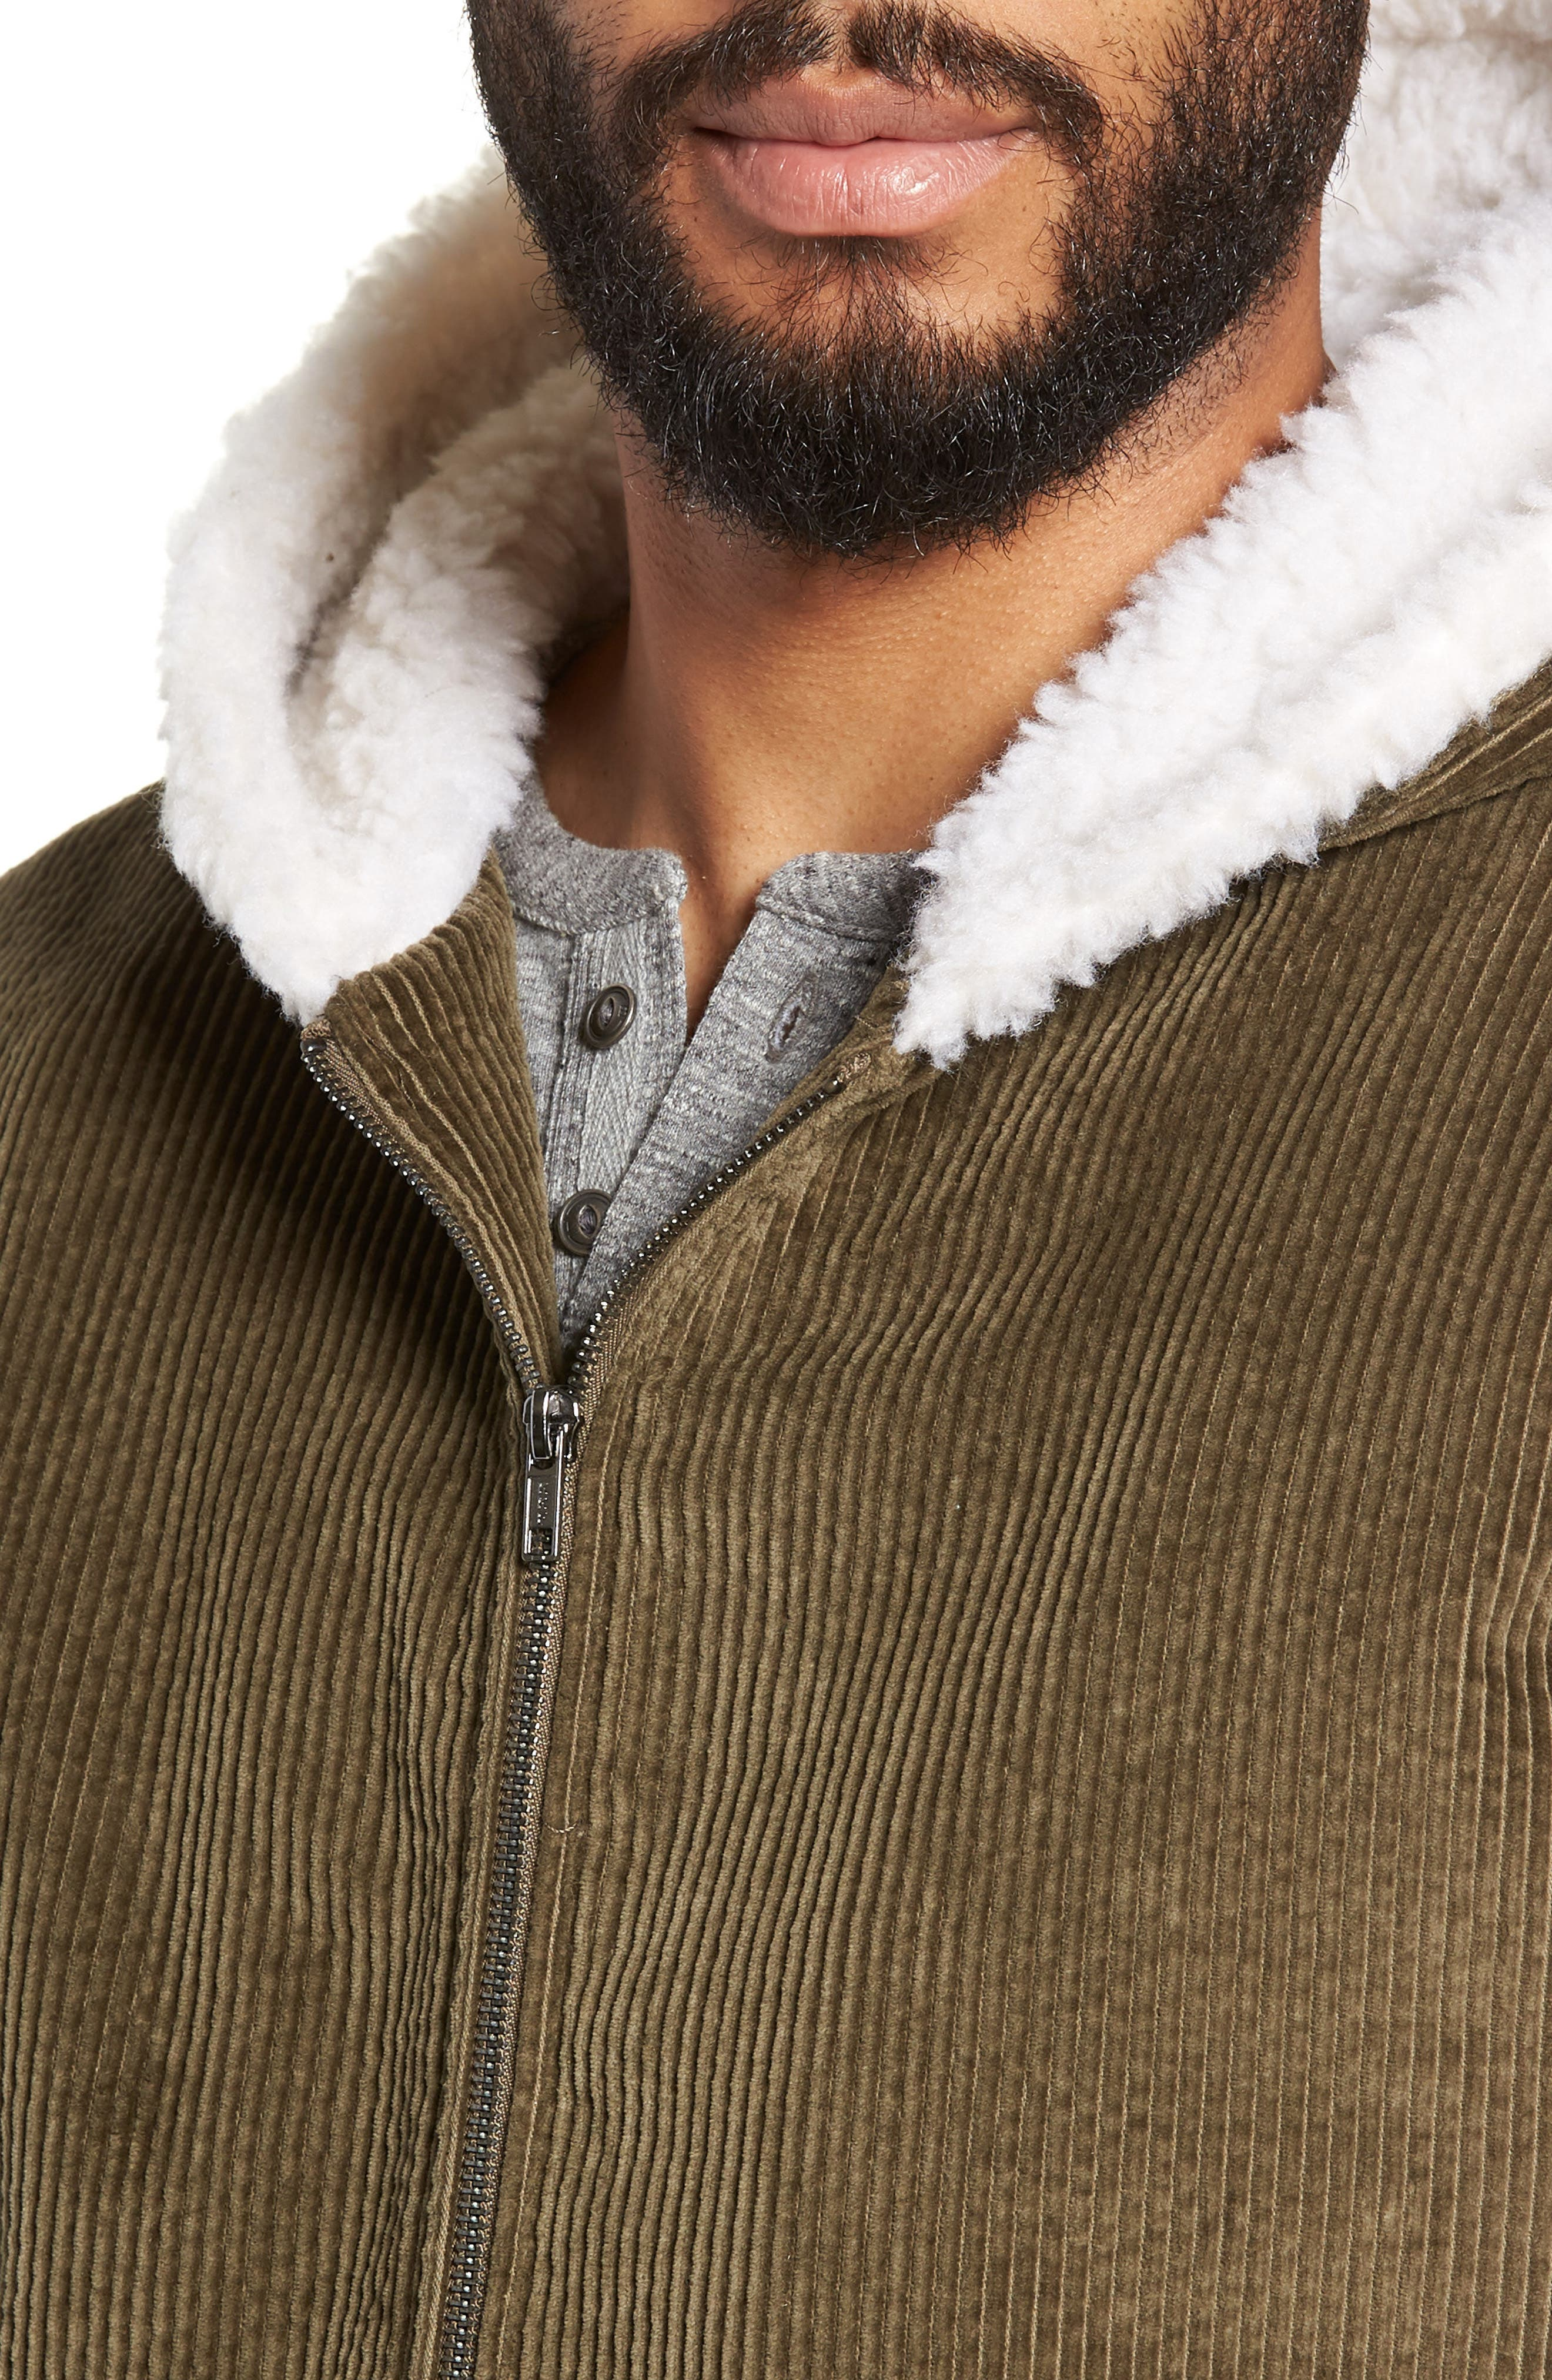 Champlain Cotton Corduroy & Faux Shearling Hooded Bomber Jacket,                             Alternate thumbnail 4, color,                             ARMY